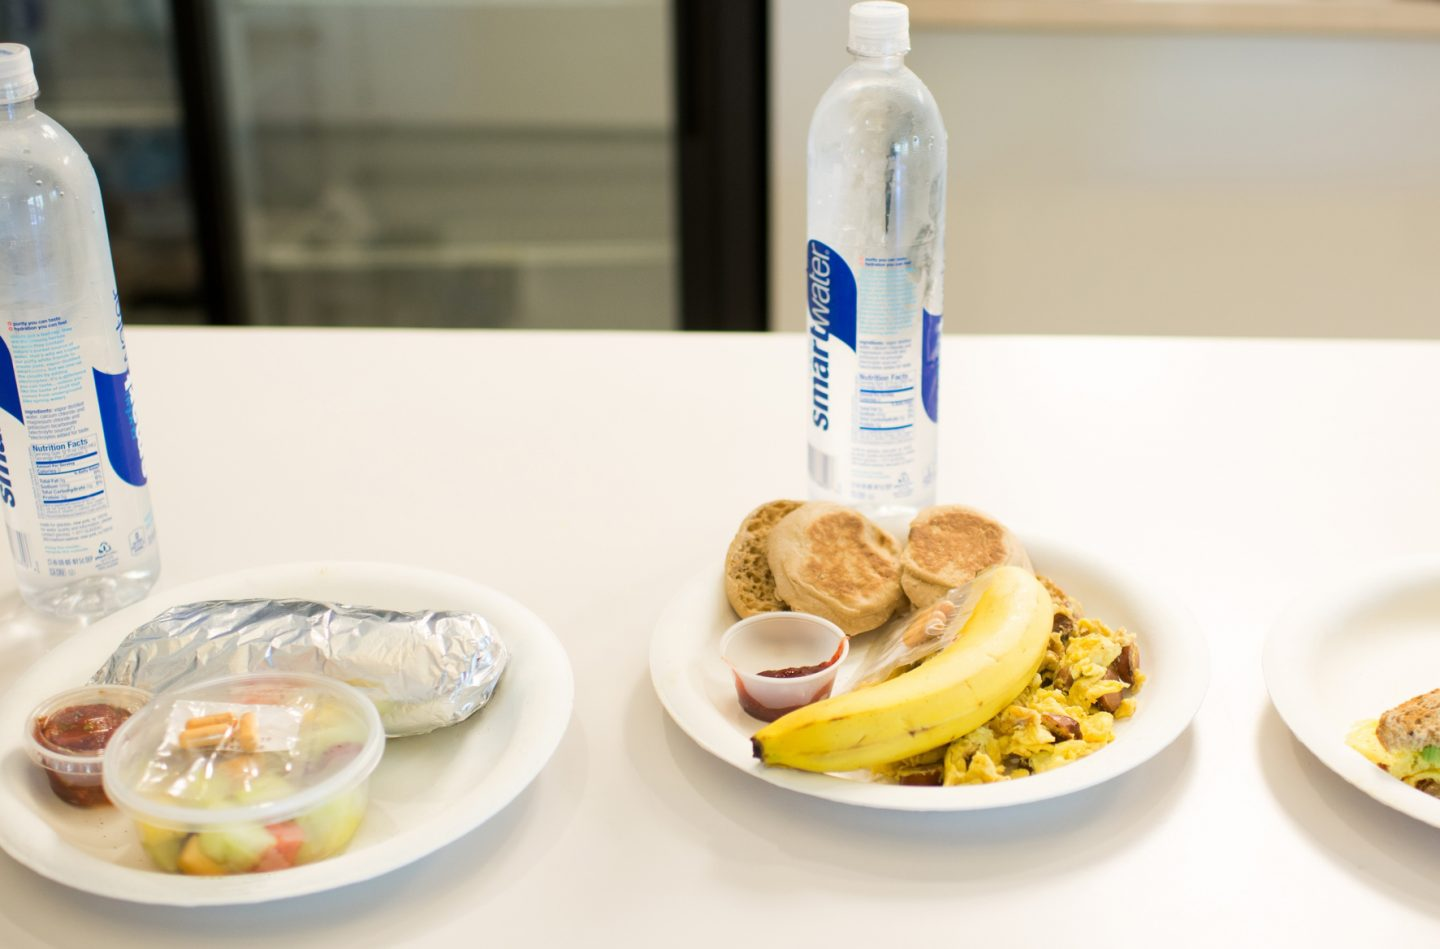 three health meals are set onto a table each with a bottle of water. nutrition, food, healthy snack, water.